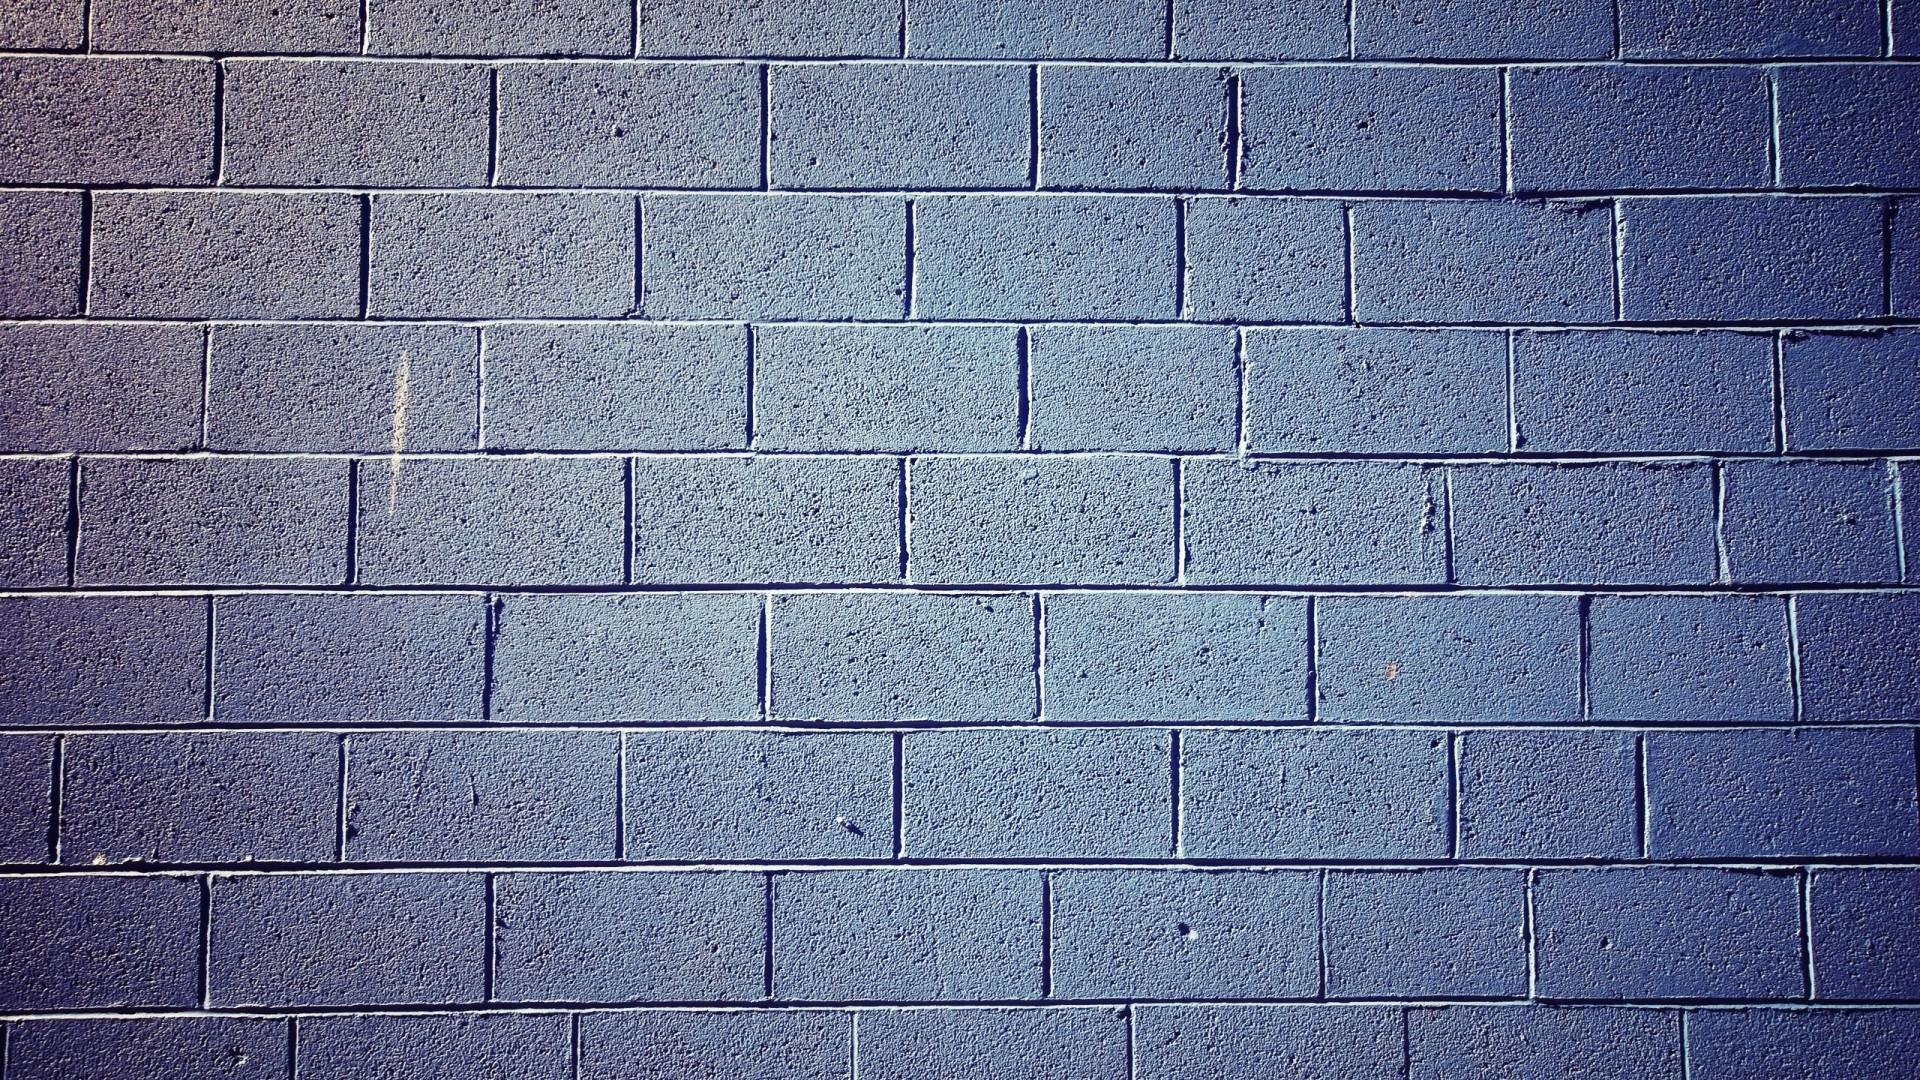 35 brick wall backgrounds psd vector eps jpg download for D wall wallpaper